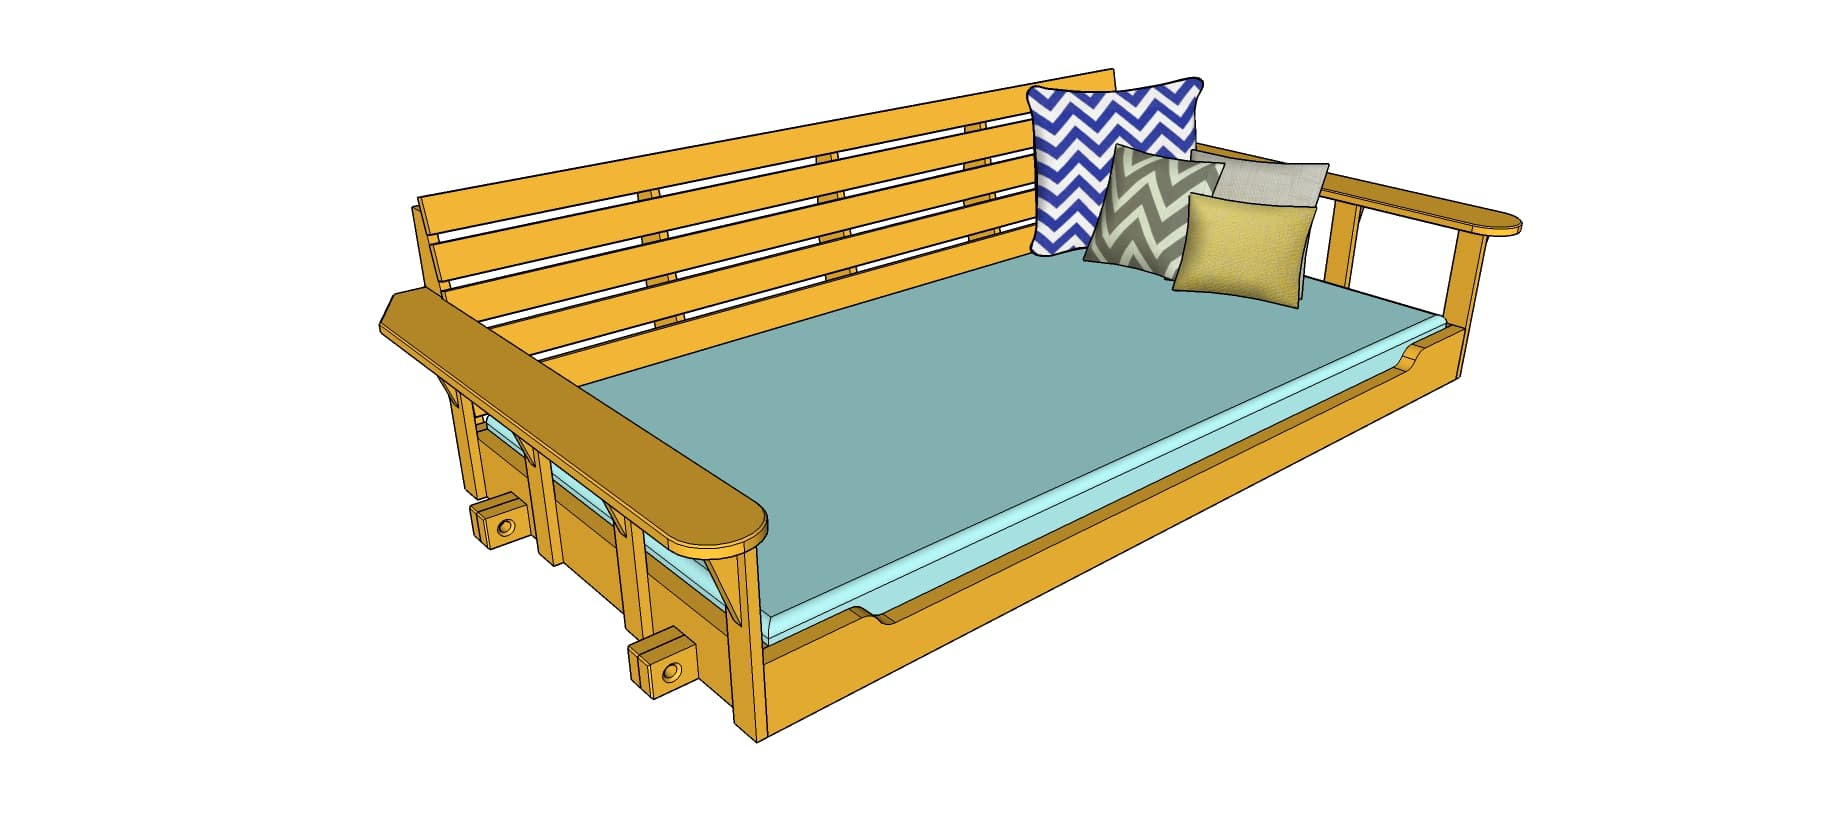 Build a Porch Bed Swing: Plans and Video How-To | Wood. It ...